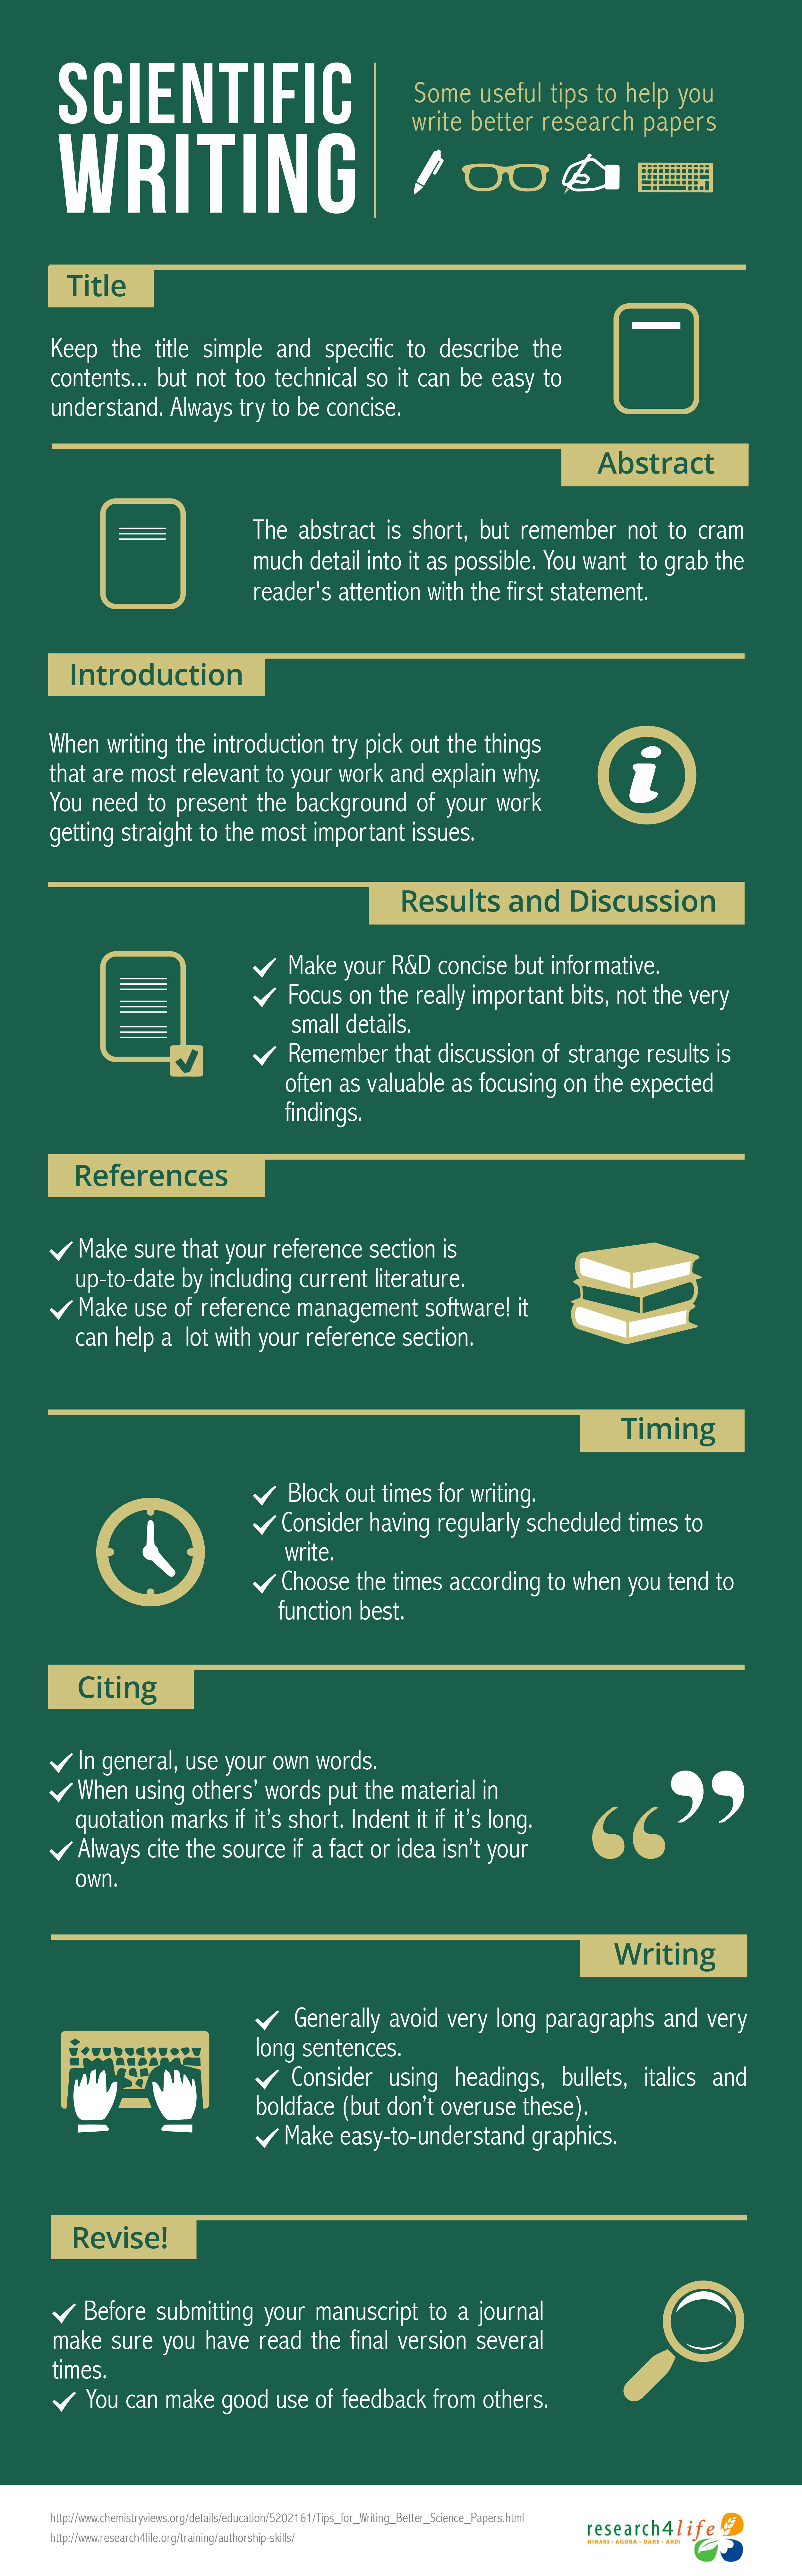 help writing a paper help writing response paper written essay  researchlifetips for writing a research paper researchlife writing a research paper